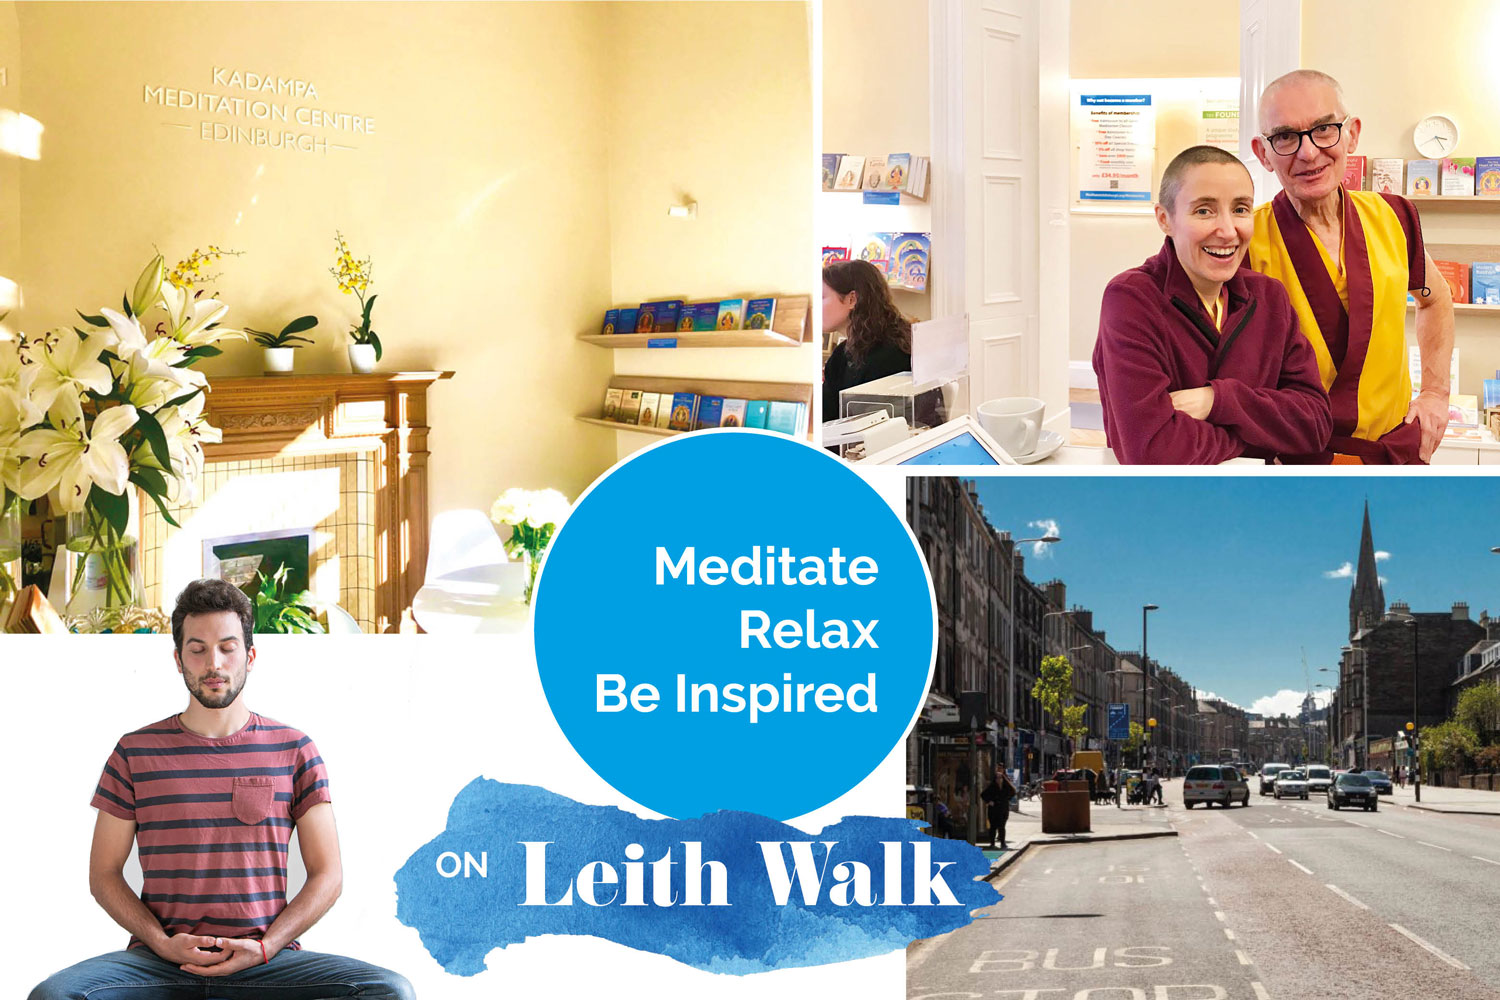 meditation centre on Leith Walk